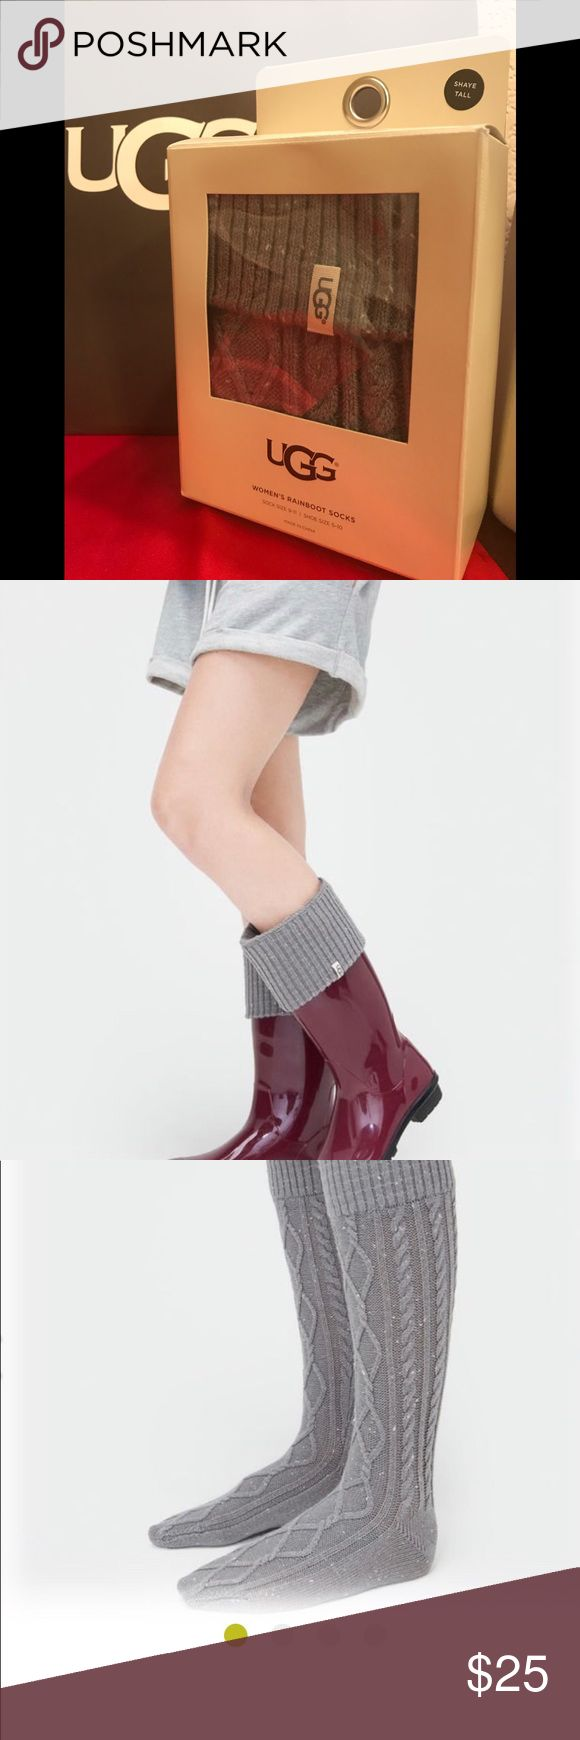 UGG Women's Rainboots Socks. These cozy cable knit socks are designed to pair with your favorite Rainboots letting you change up your look and make it your own. 43% acrylic, 36% nylon, 19% Wool, 2% spandex. UGG Accessories Hosiery & Socks